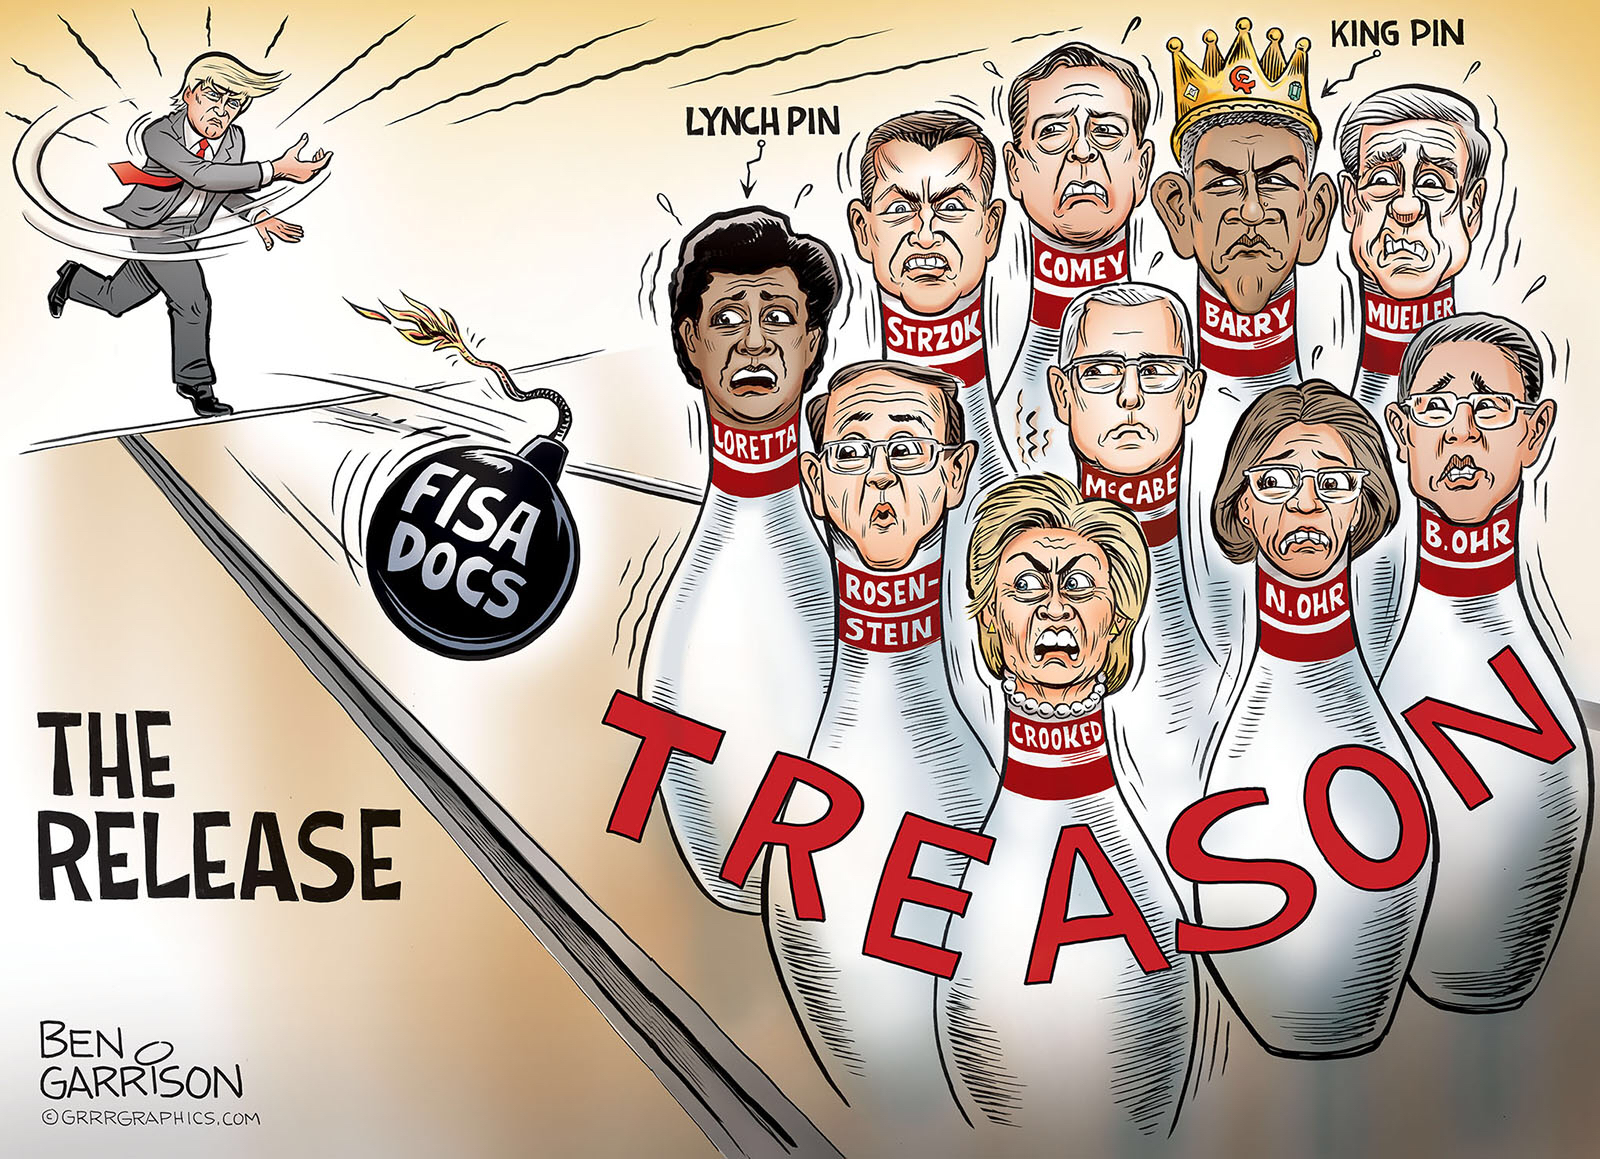 FisaGate - Release the Unredacted FISA - Don't Get Sidetracked By ...